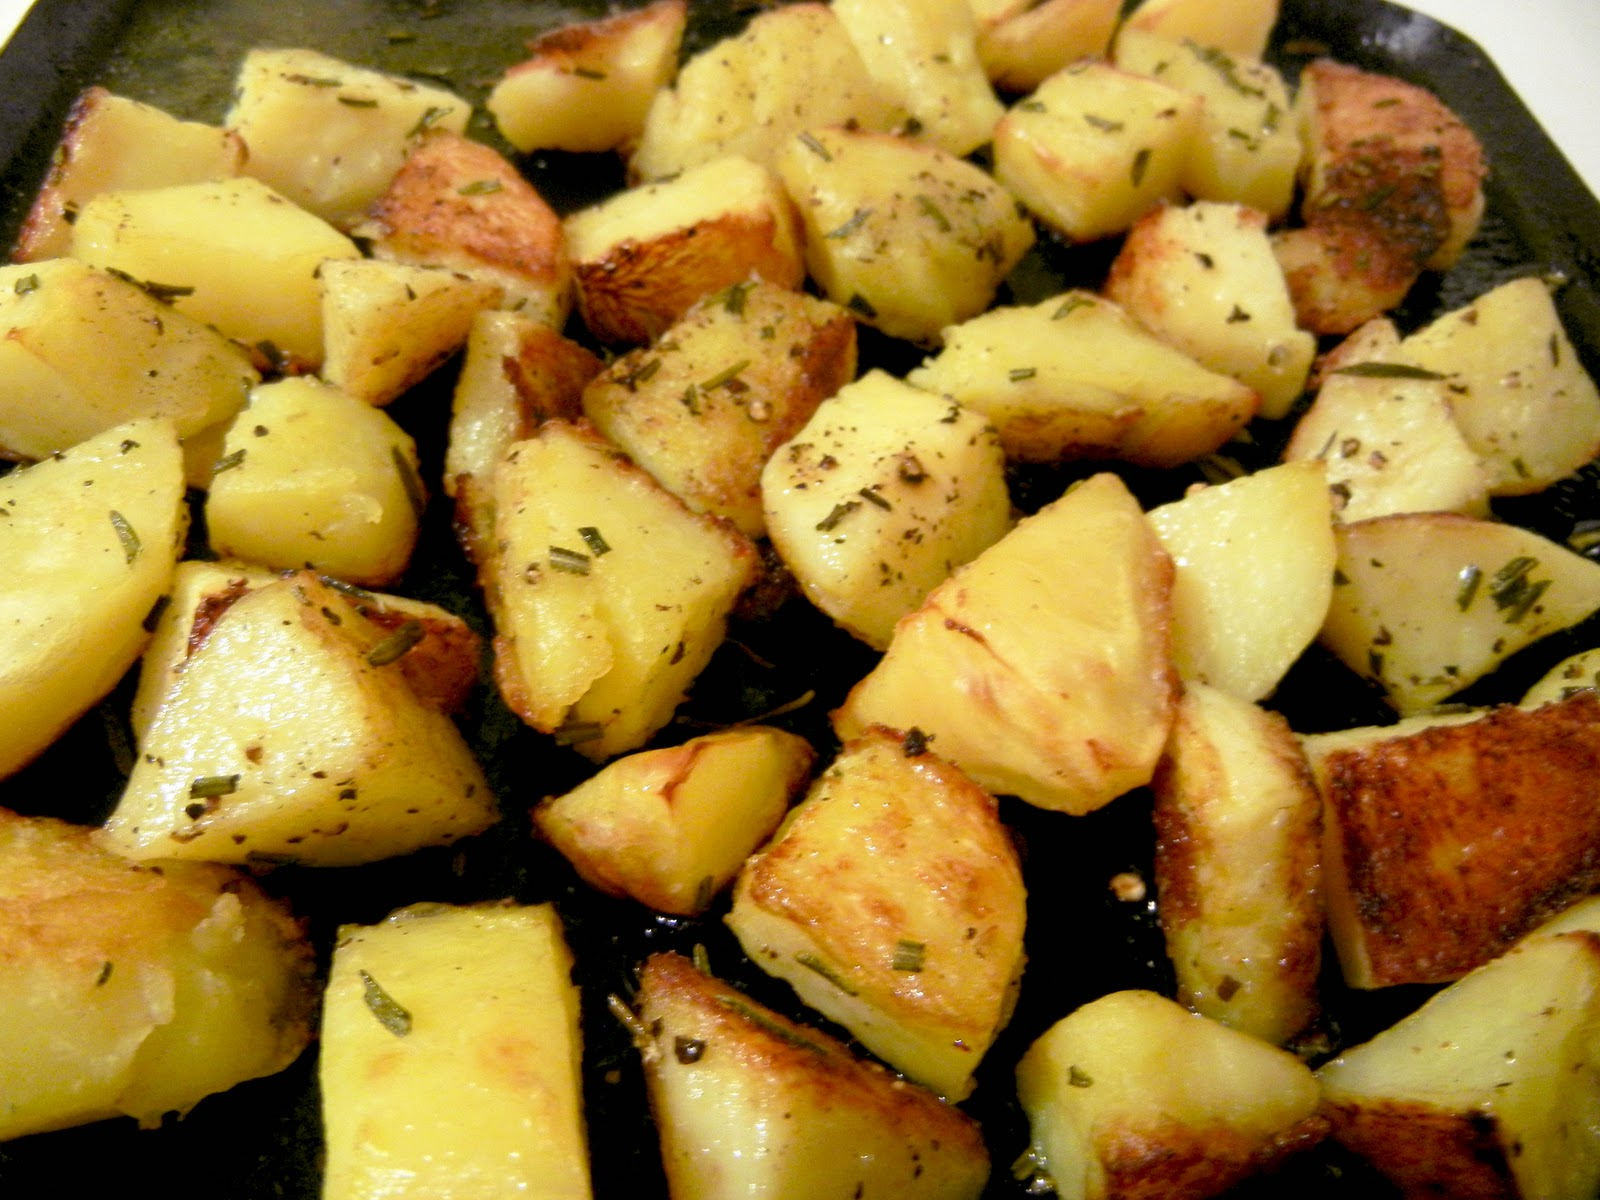 Rosemary Roasted Potatoes Recipe - newhairstylesformen2014.com